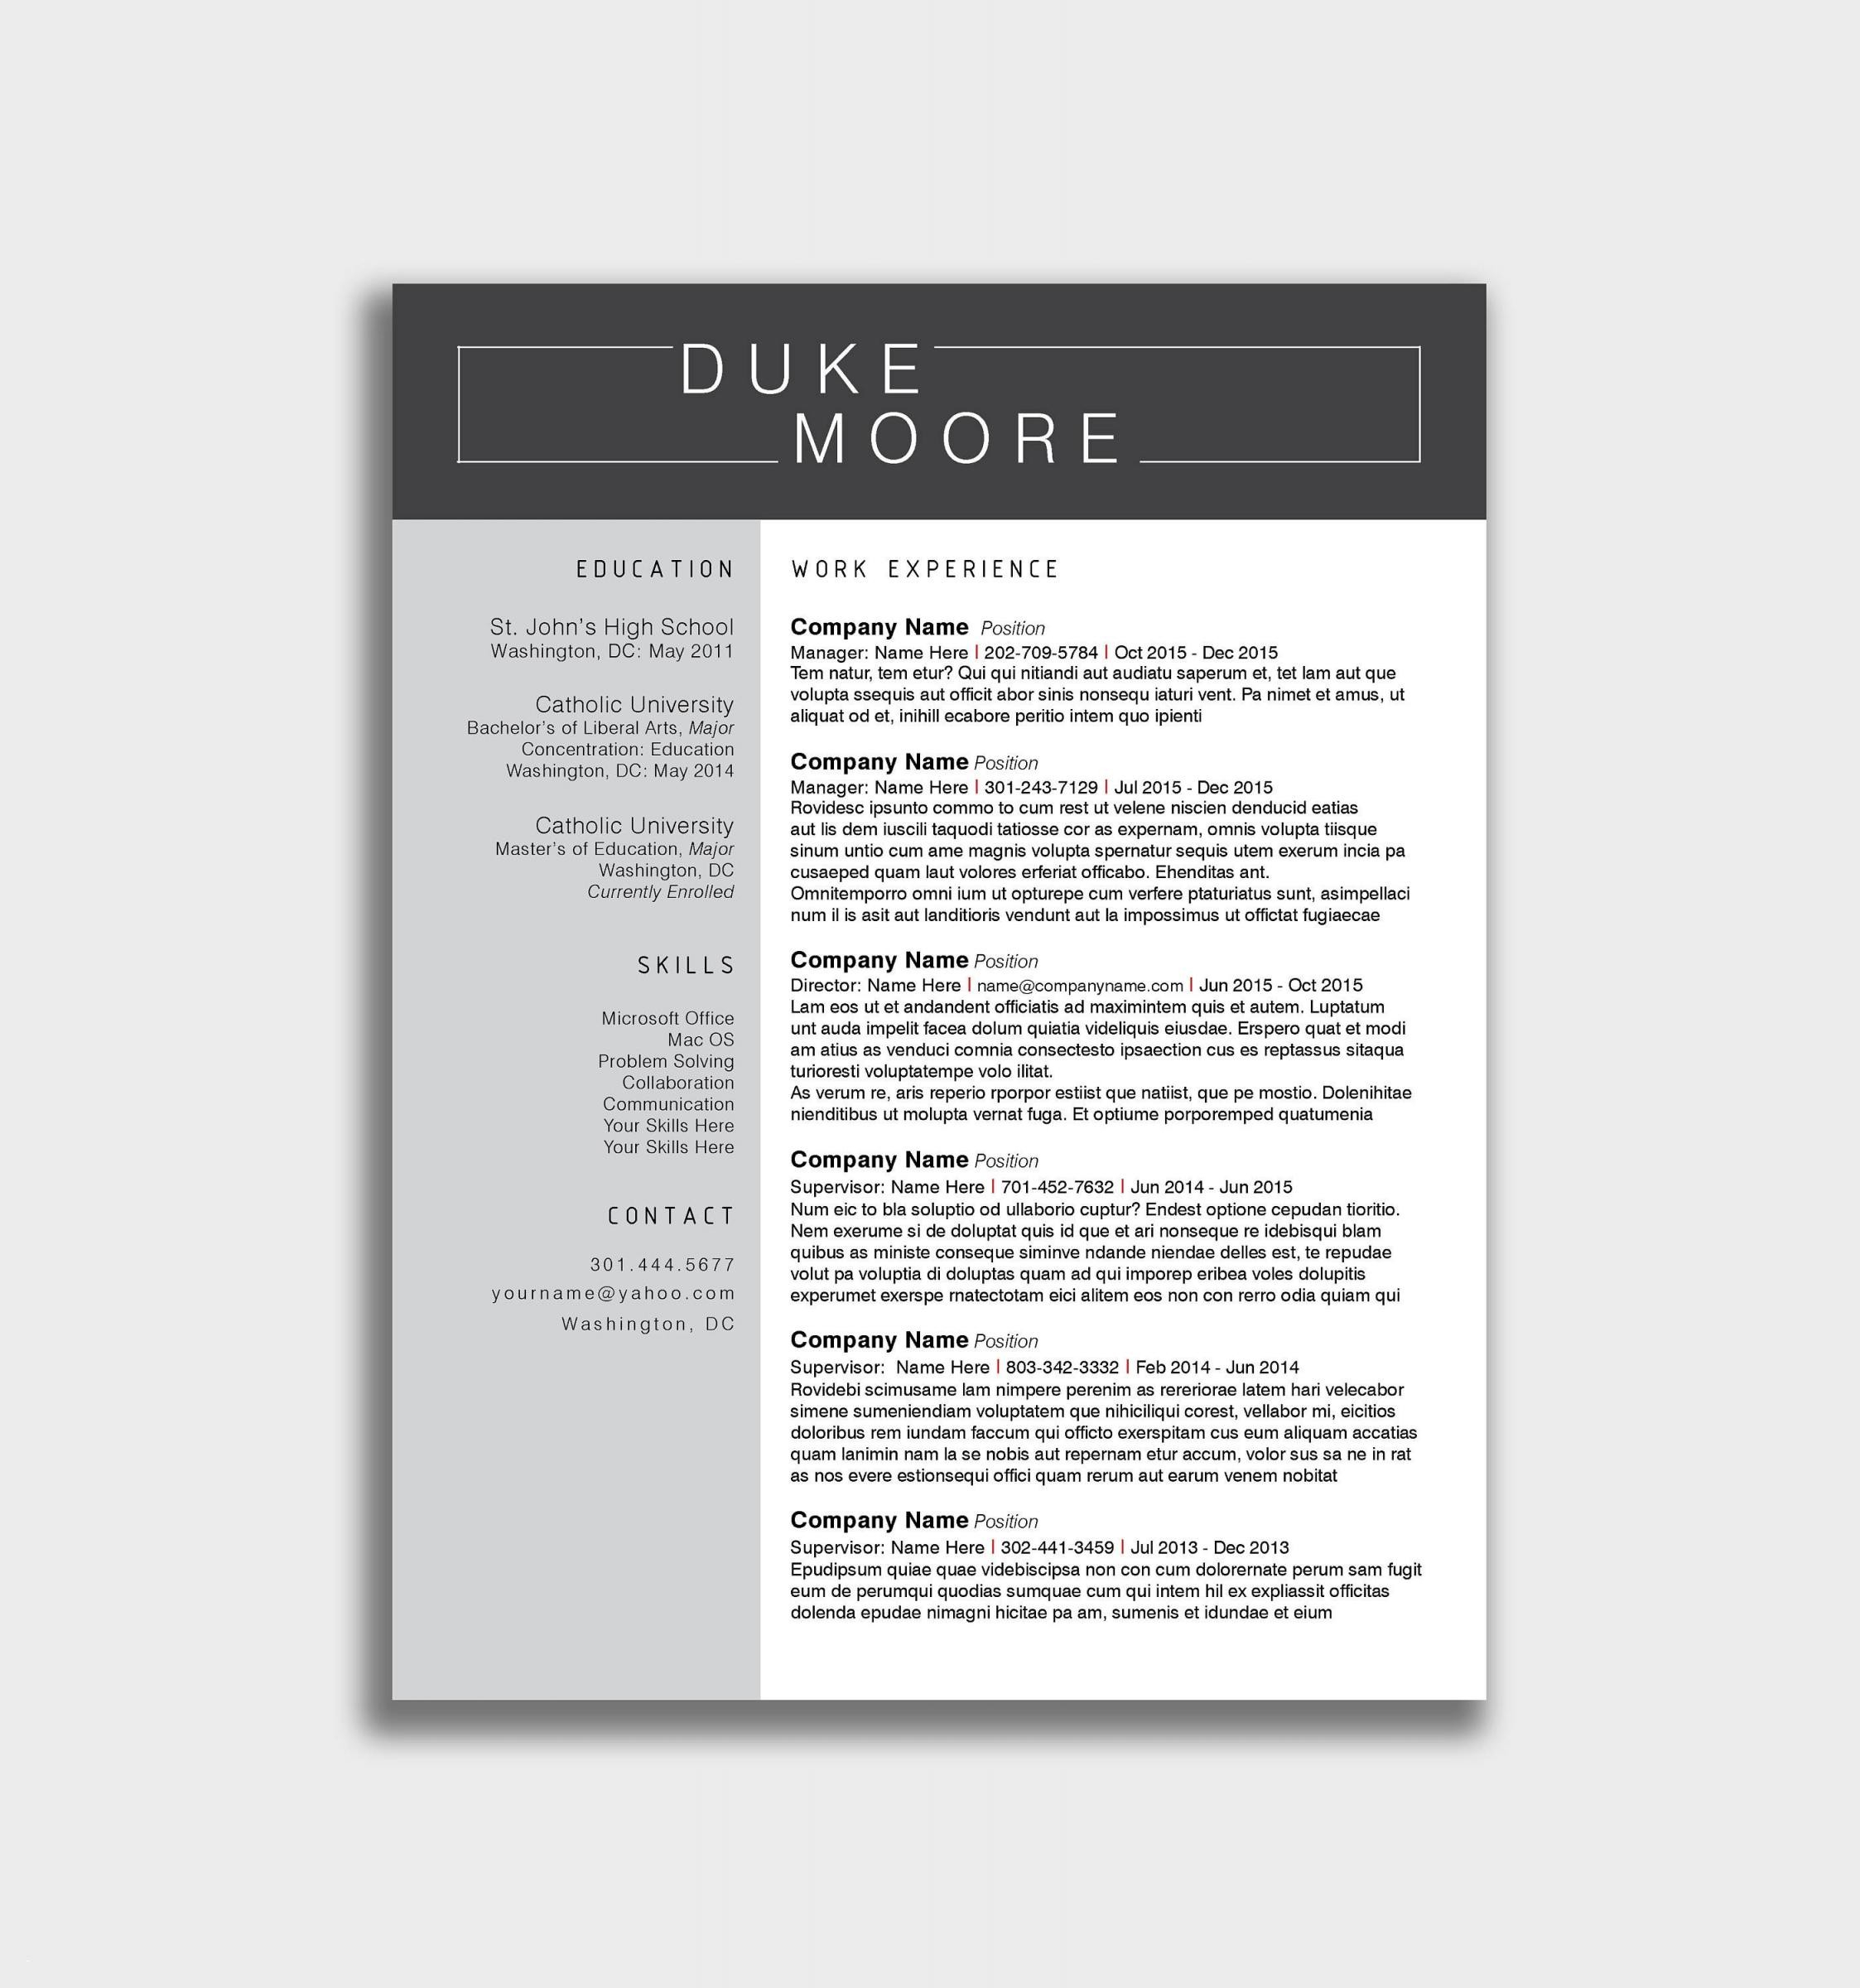 Resume Template Word Download - Resume Template Word Download New Resume Download Template Free